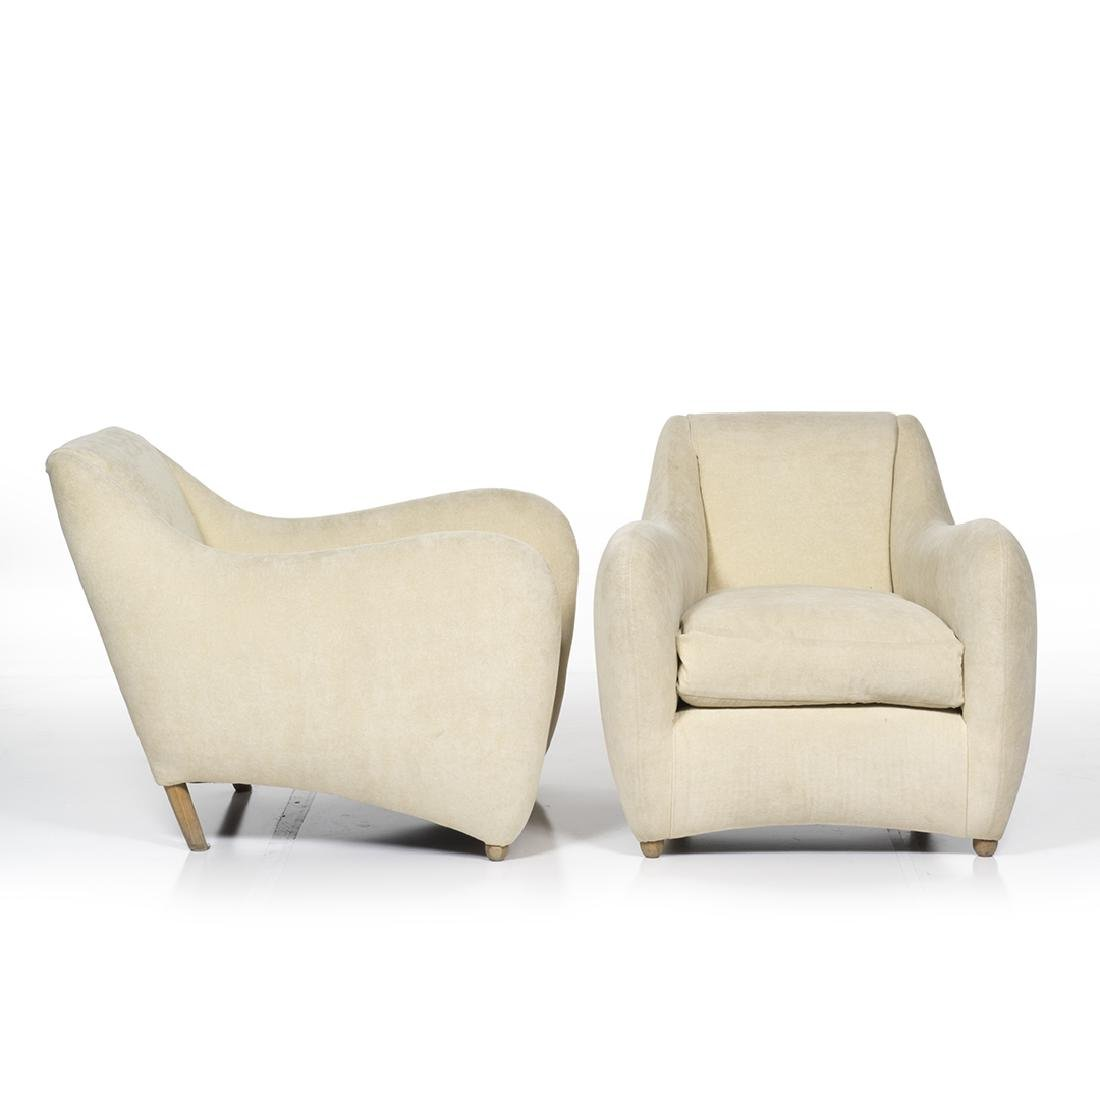 Matthew Hilton Balzac Chairs (2) - 2